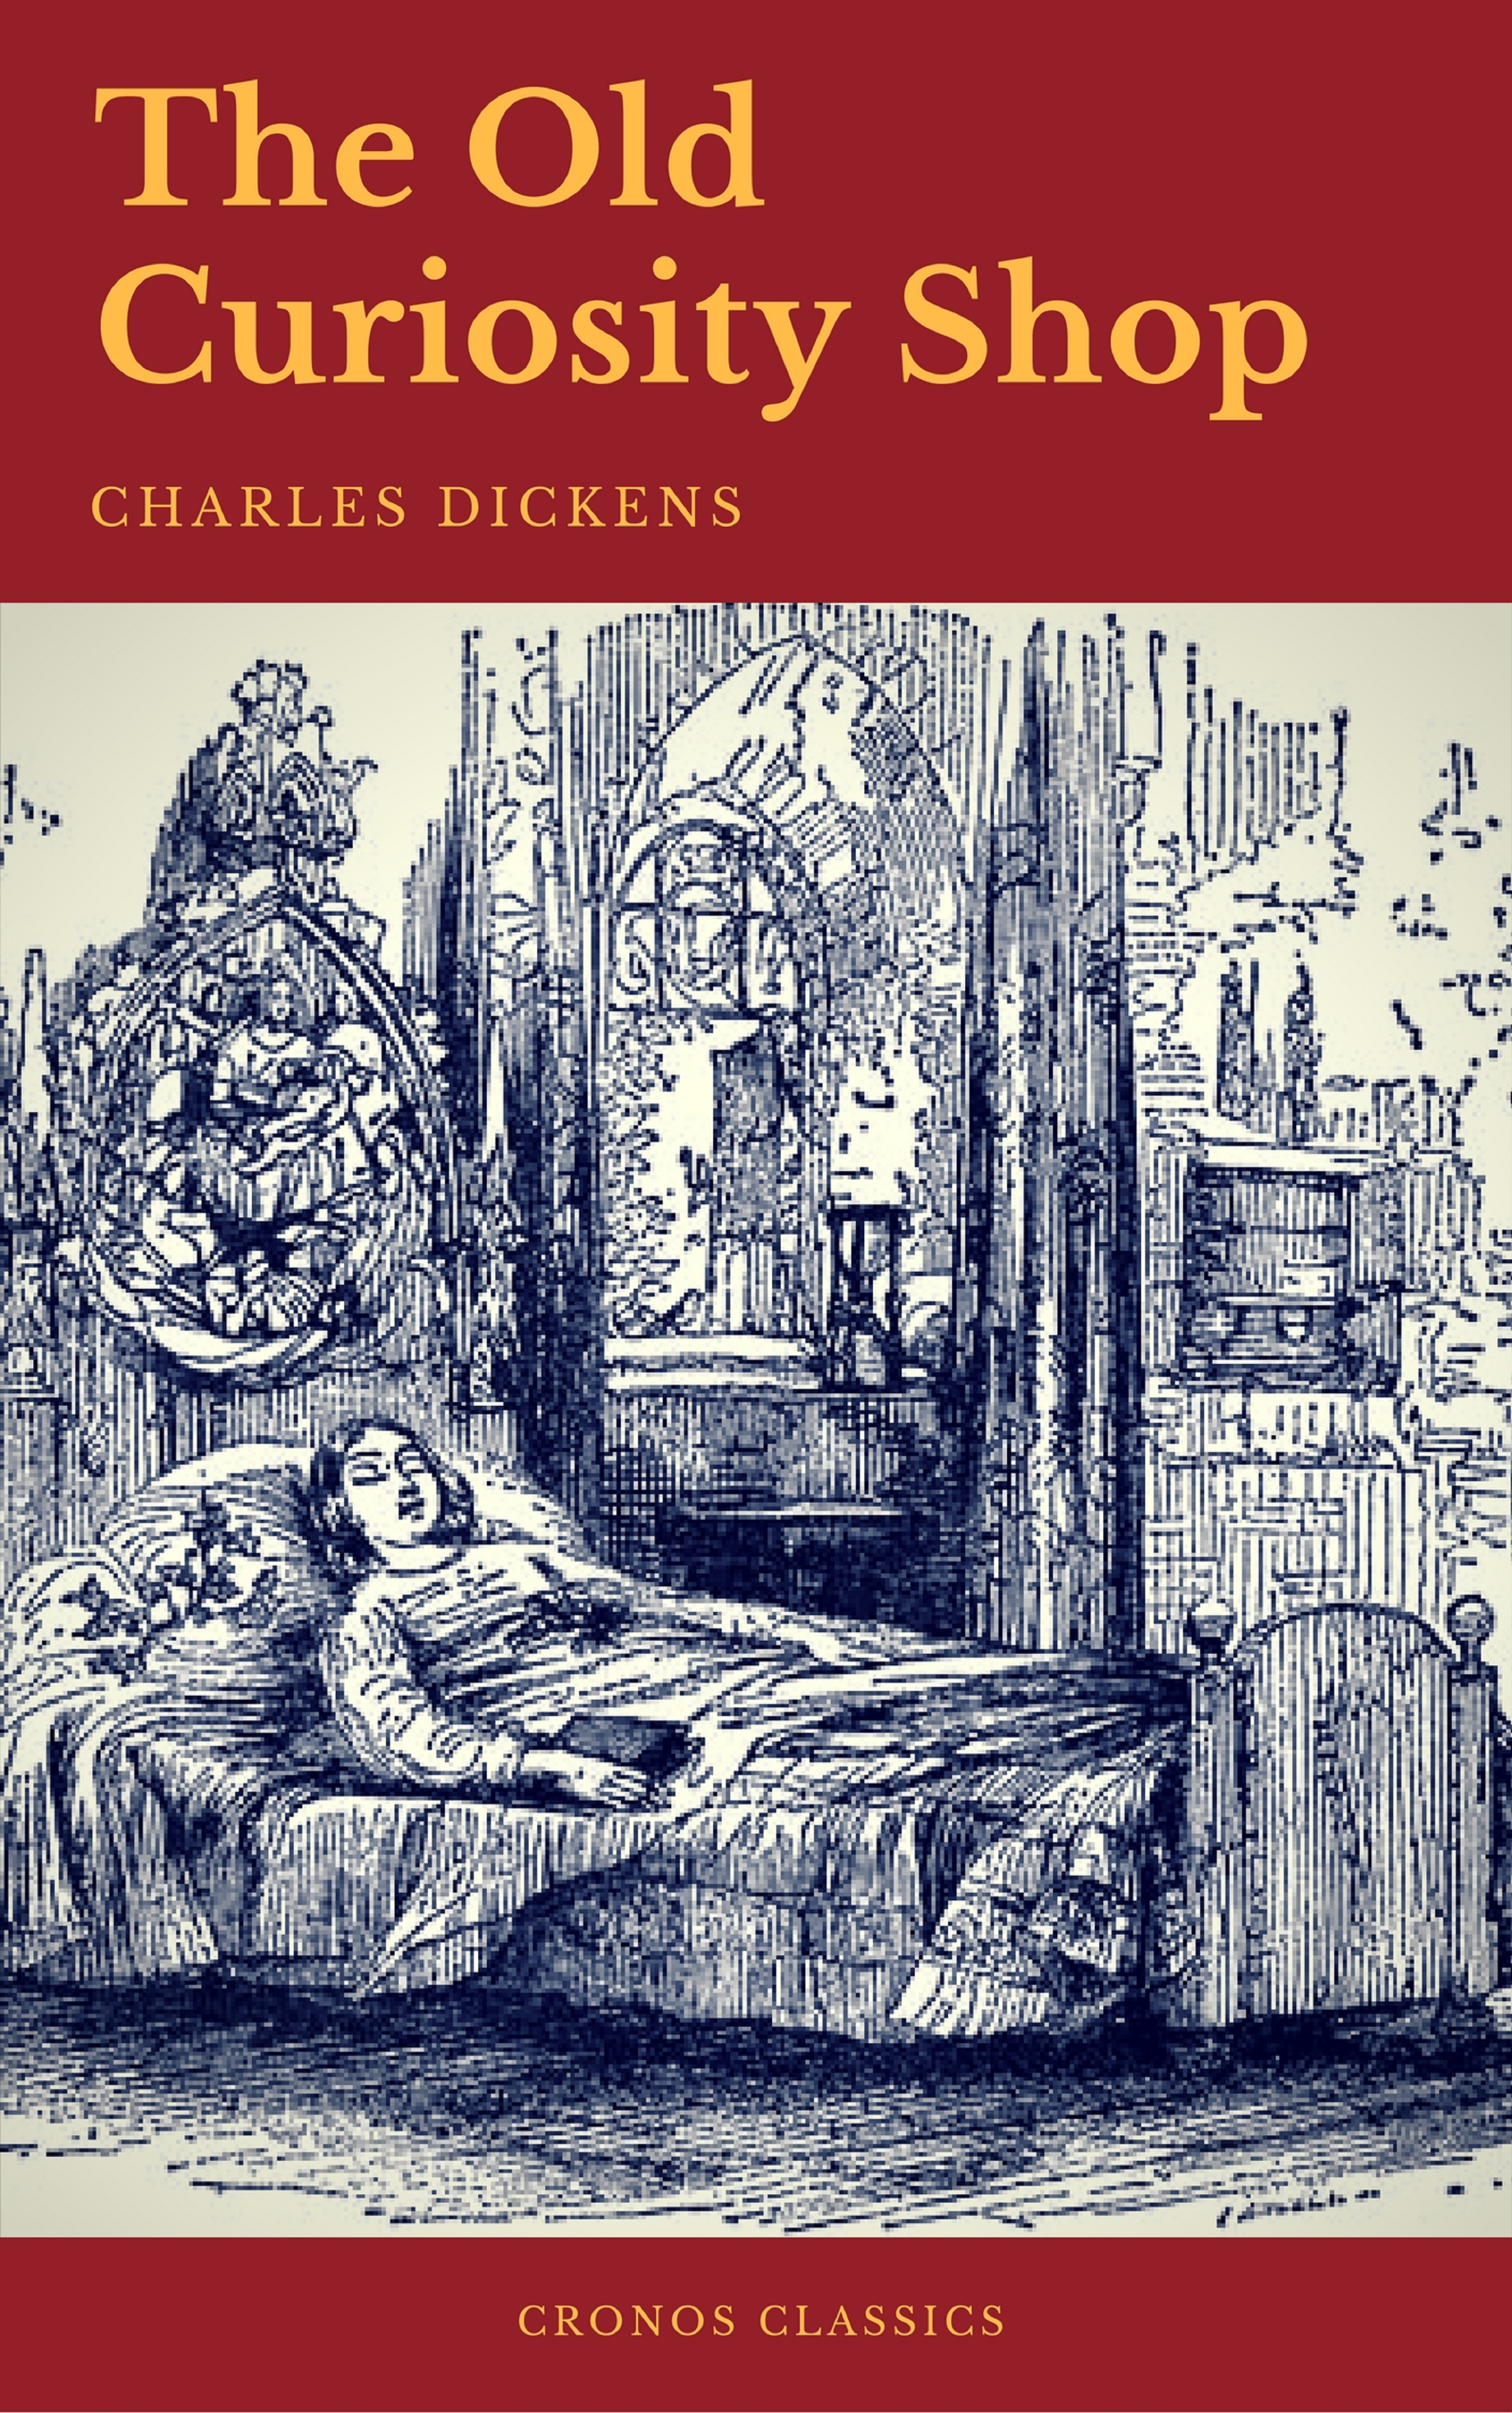 Charles Dickens The Old Curiosity Shop (Cronos Classics) charles dickens barnaby rudge cronos classics